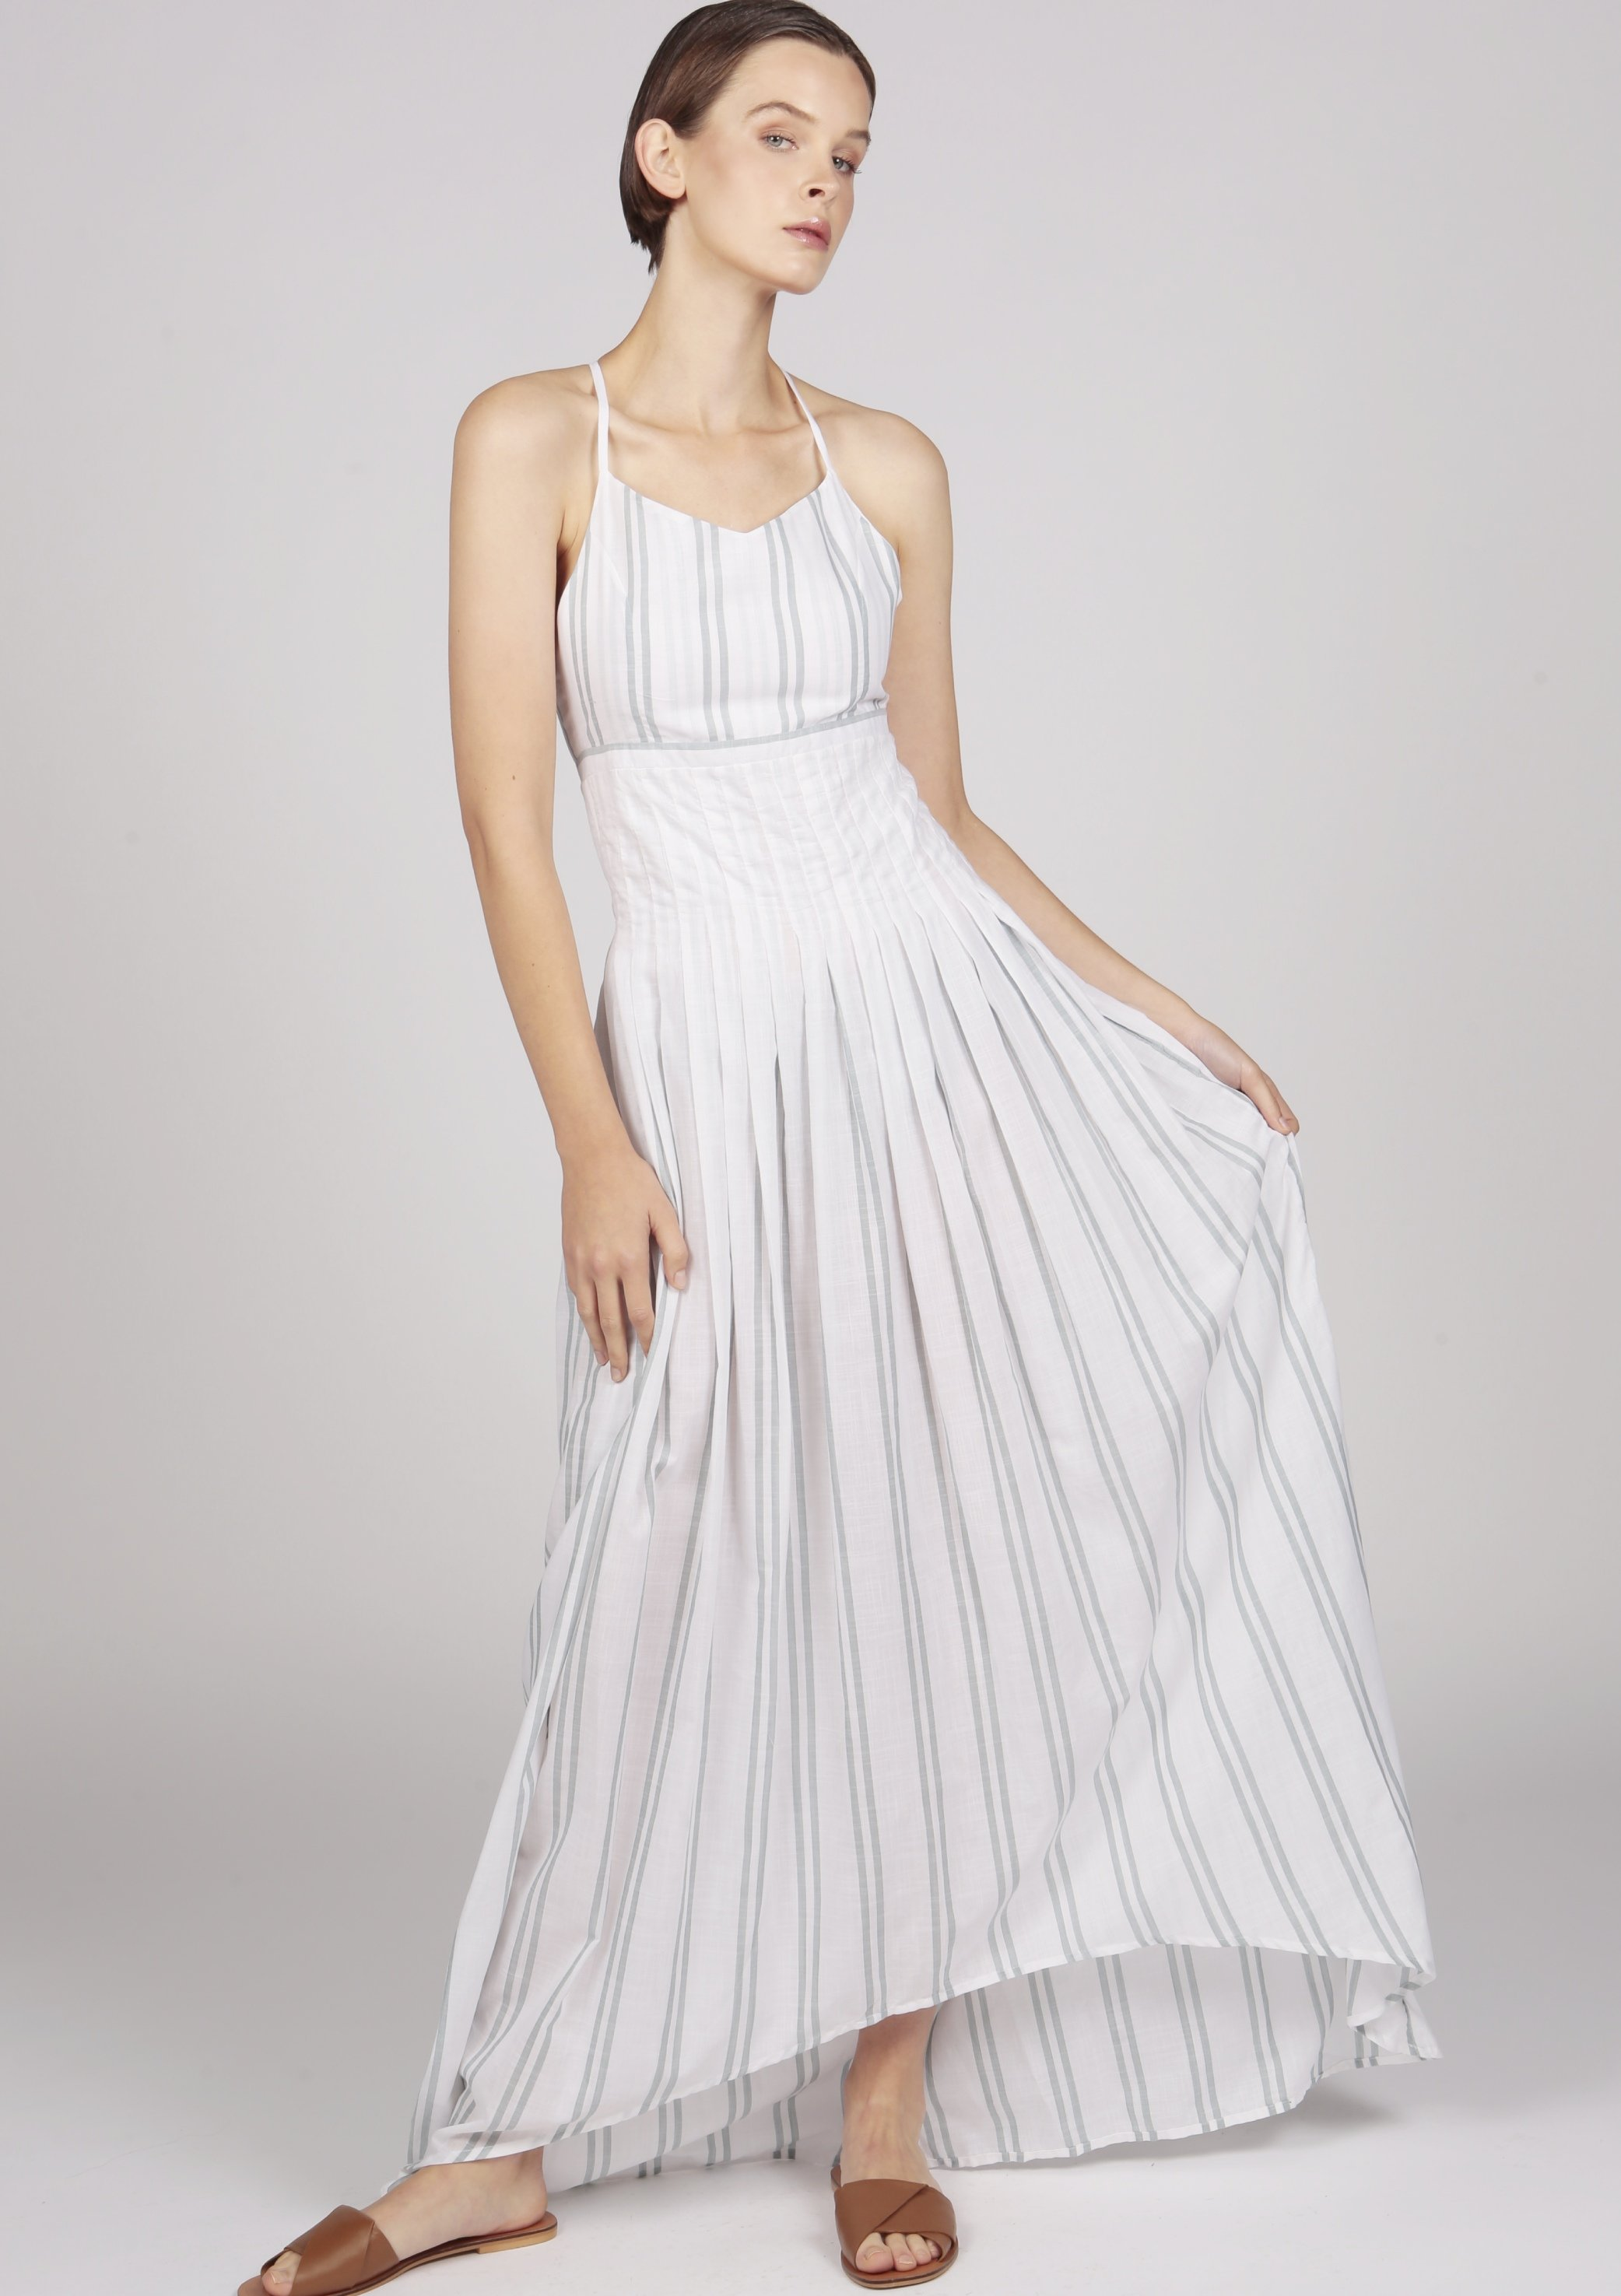 MARGUERITE white striped pleated dip-hem maxi cocktail dress